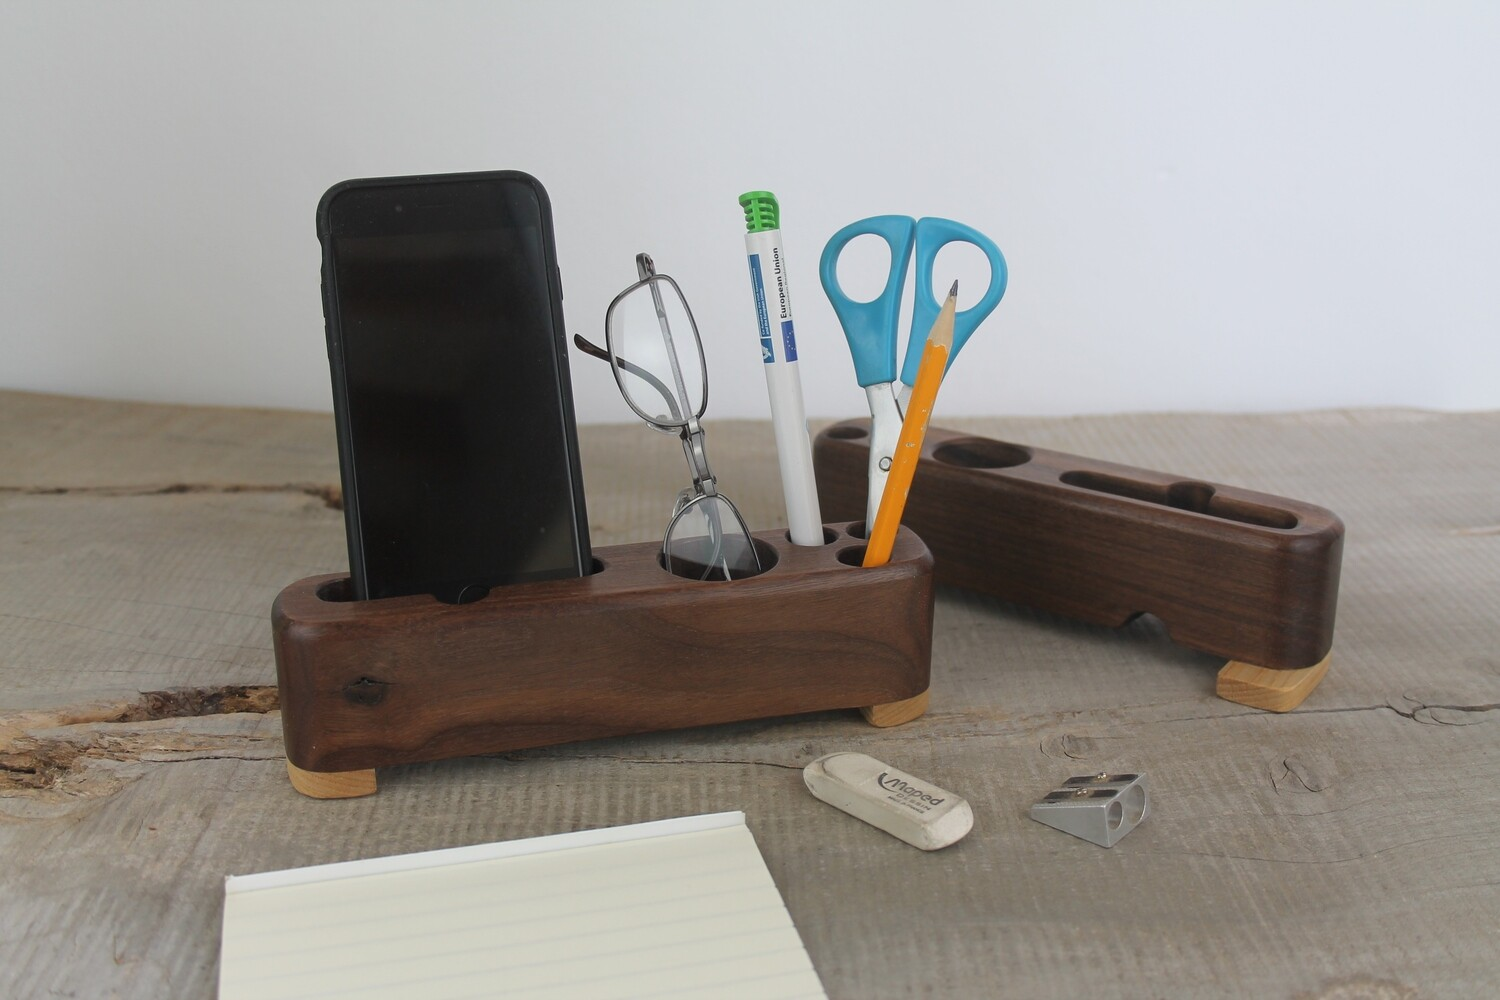 Walnut And Ash Wooden Docking Station, Desk Caddy